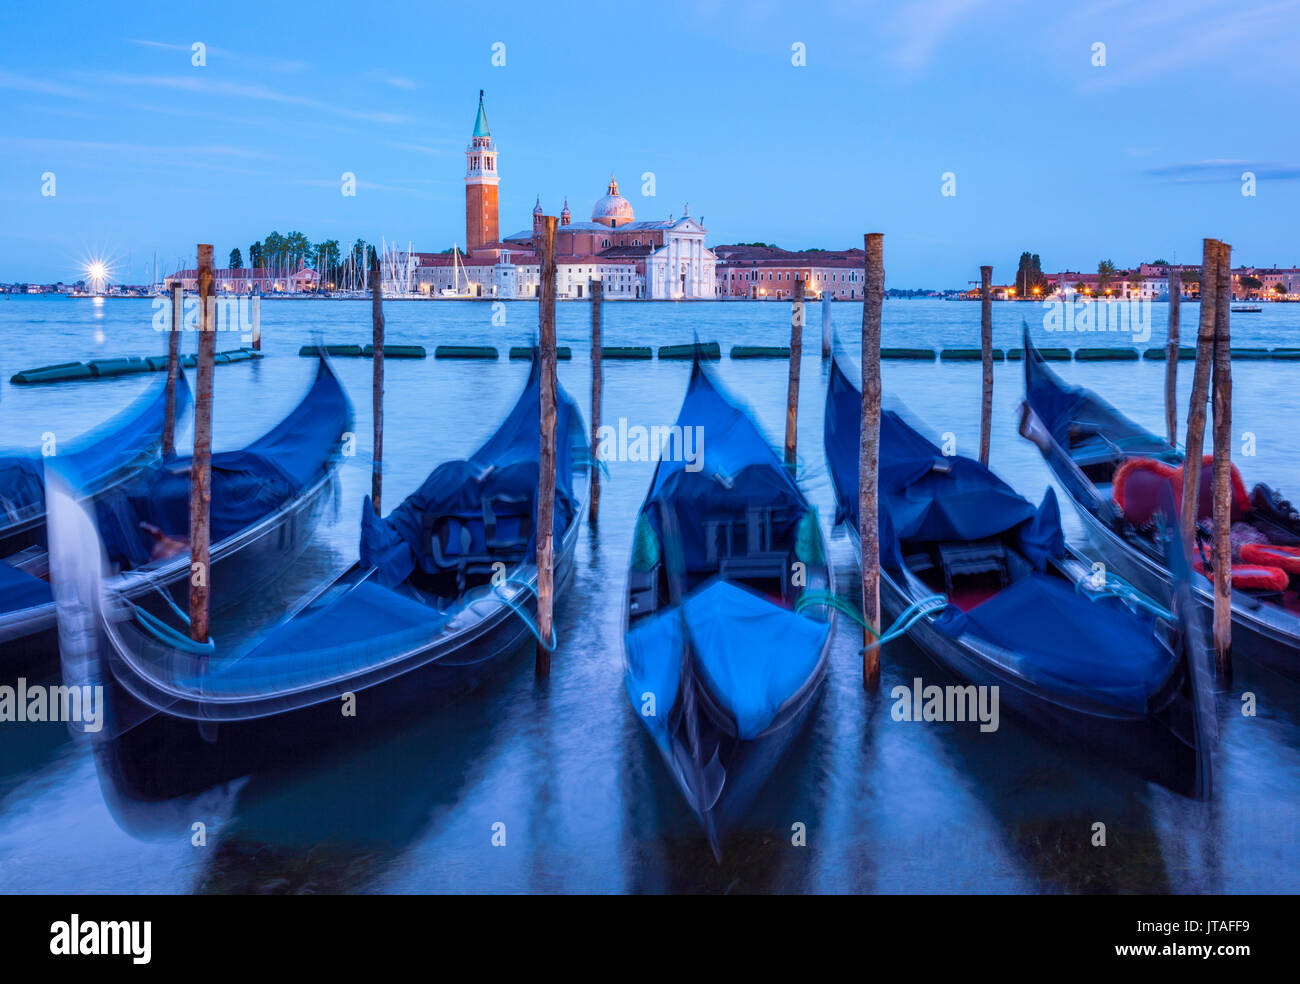 Gondolas moored at night in the Bacino di San Marco (St. Mark's Basin), waterfront, Venice, UNESCO, Veneto, Italy, Europe - Stock Image